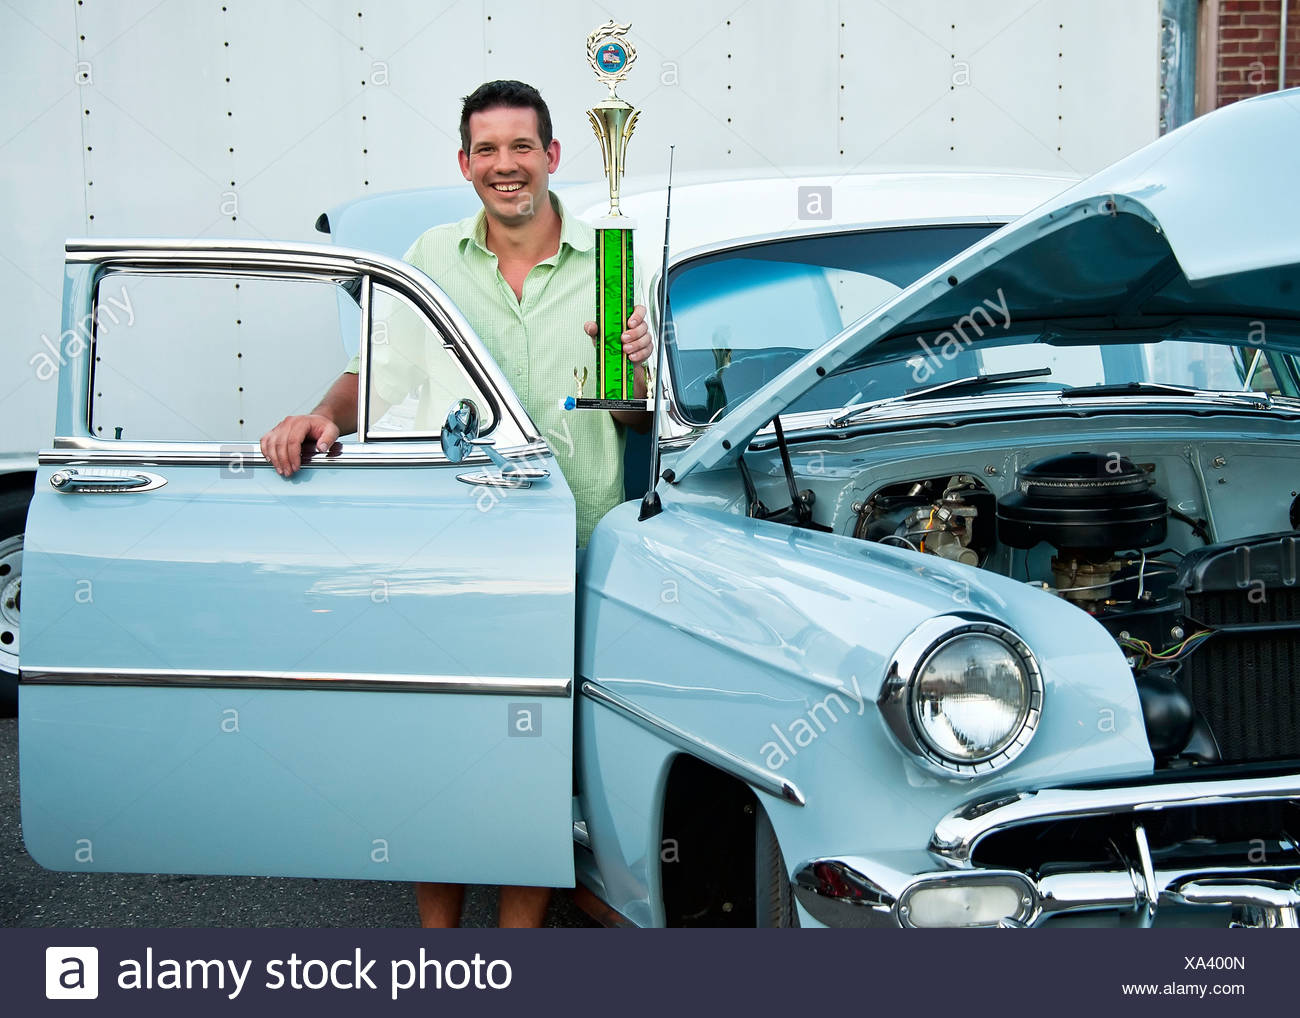 Oldtimer-Show-Winner. Stockbild